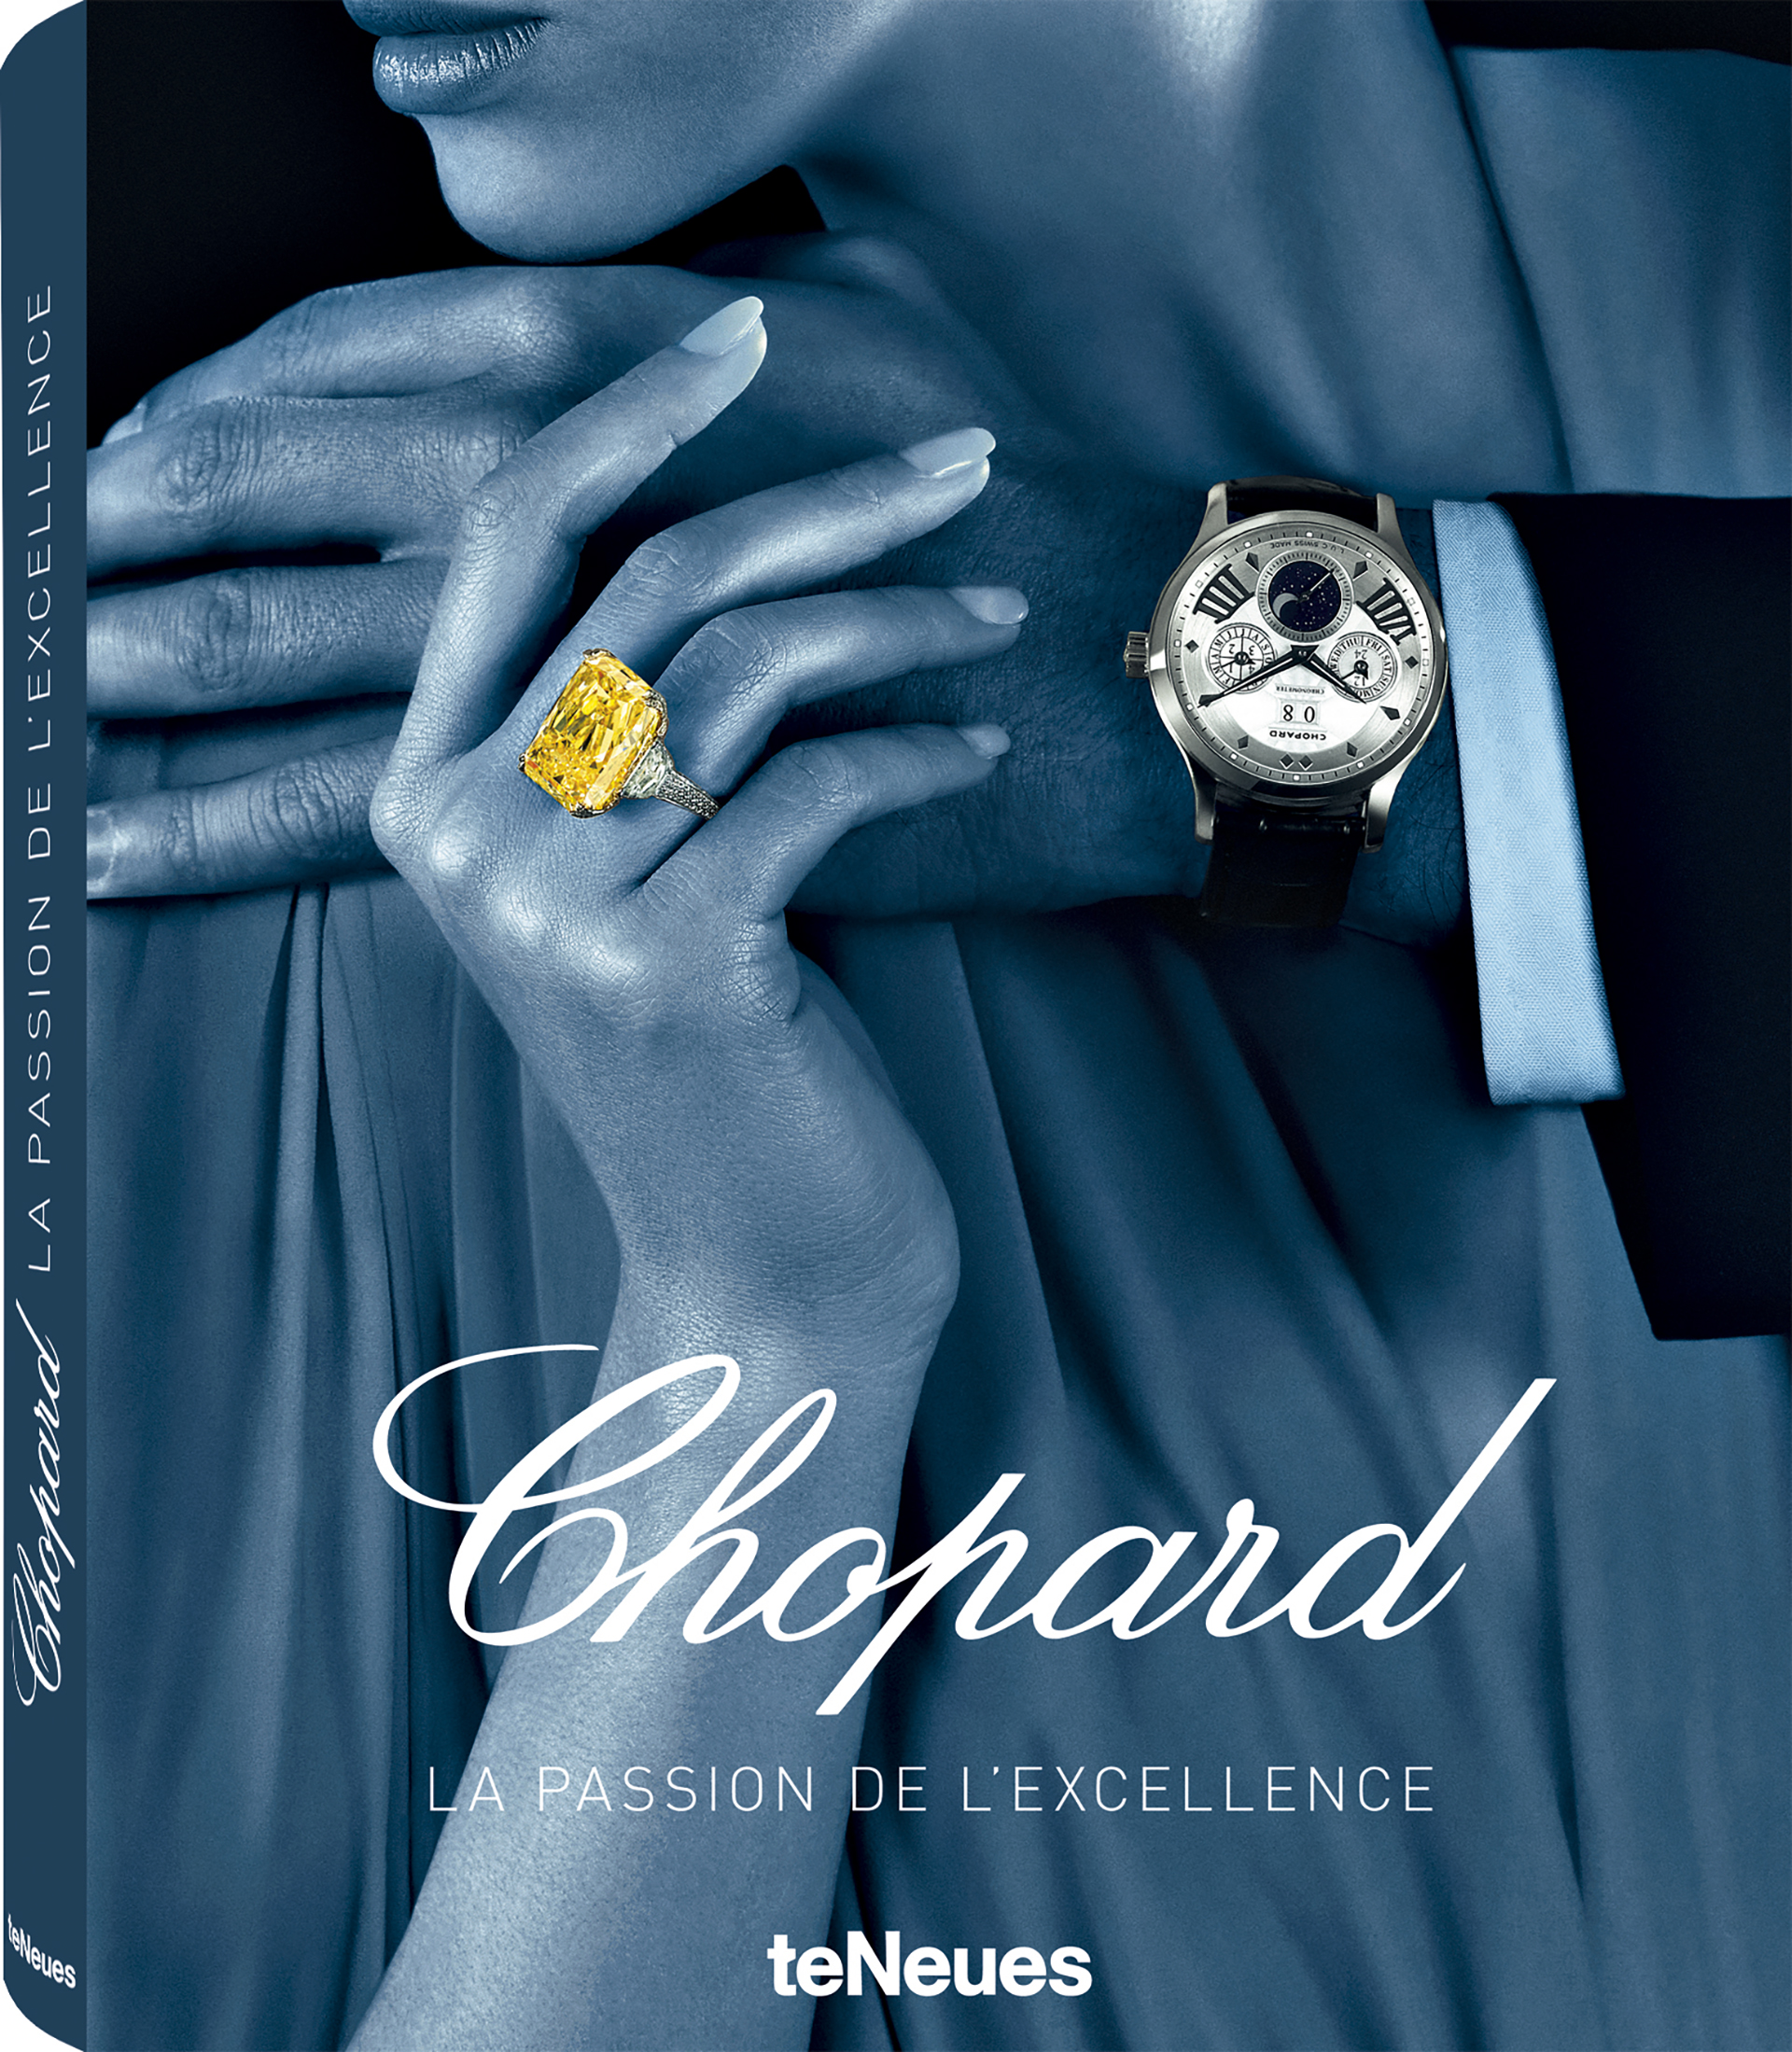 Chopard - Corporate Publishing teNeues